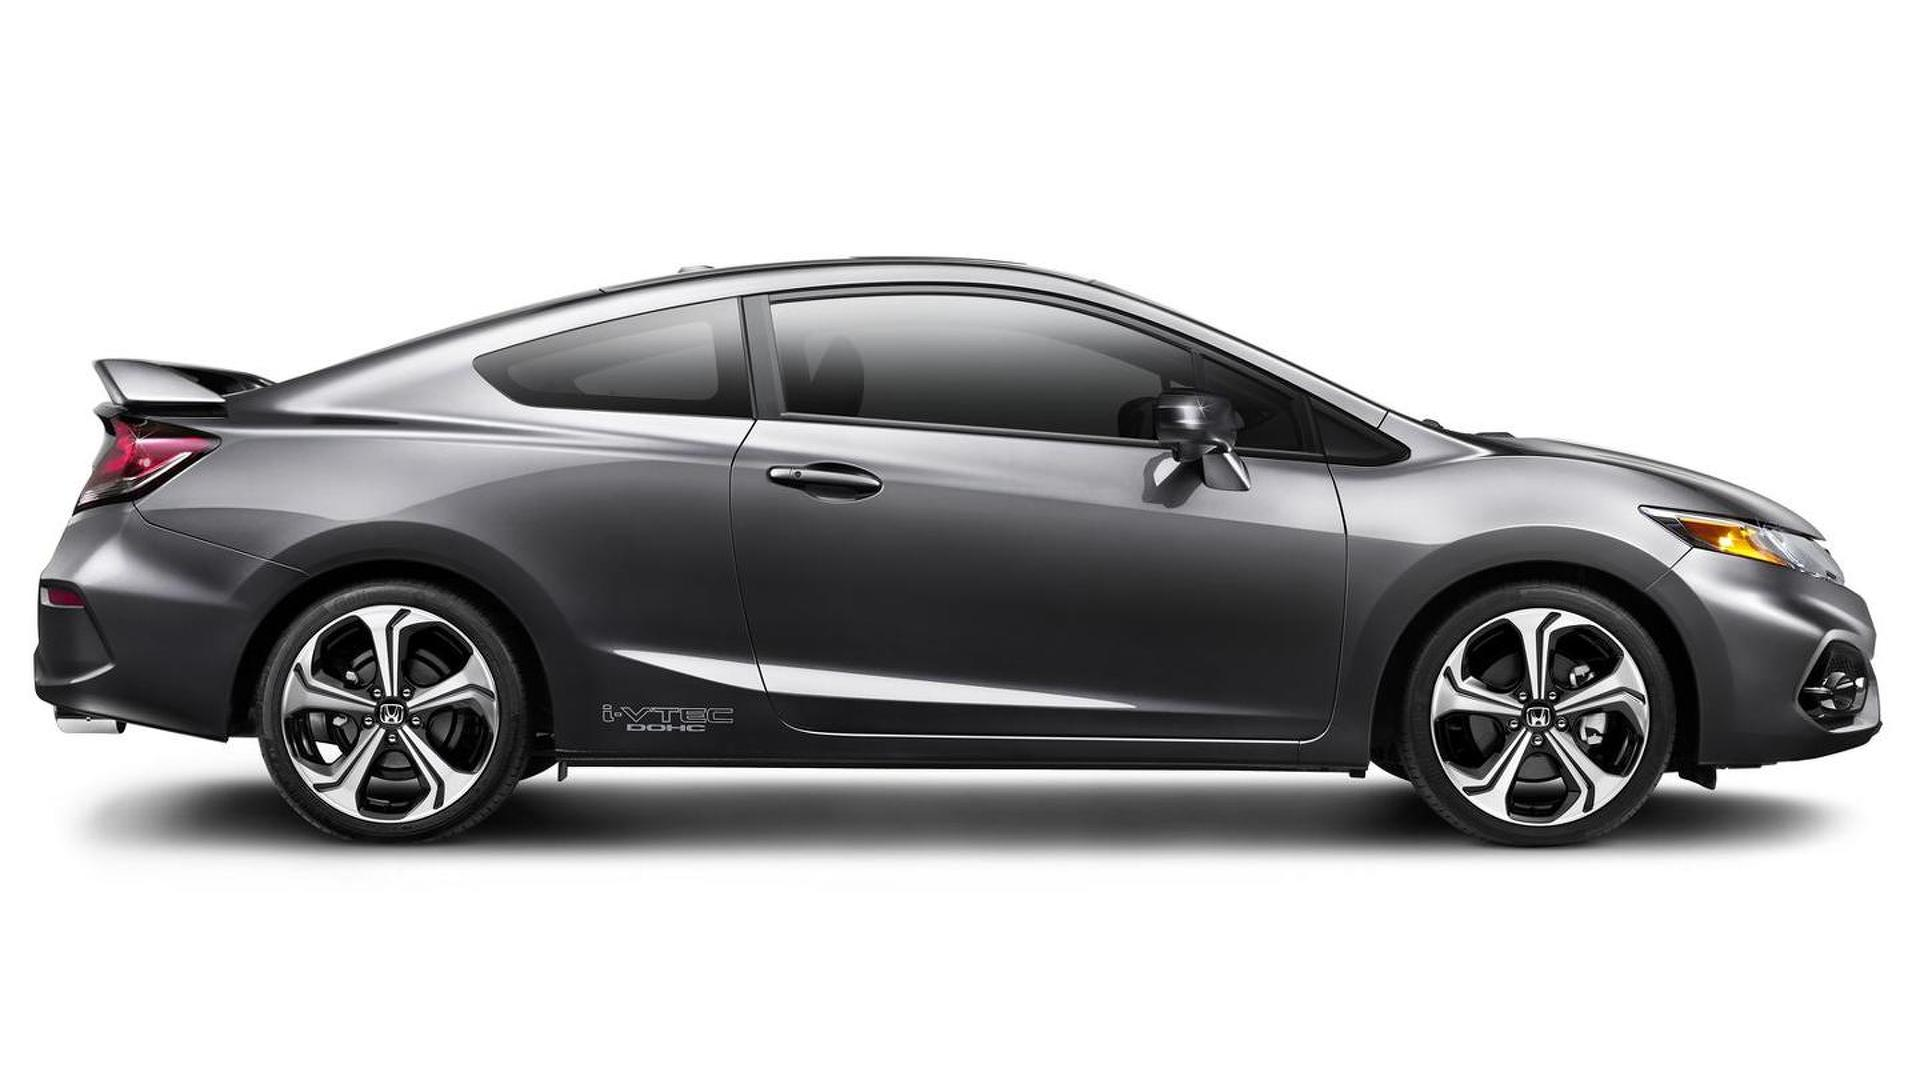 Next-gen Honda Civic getting a turbocharged 1.5-liter engine